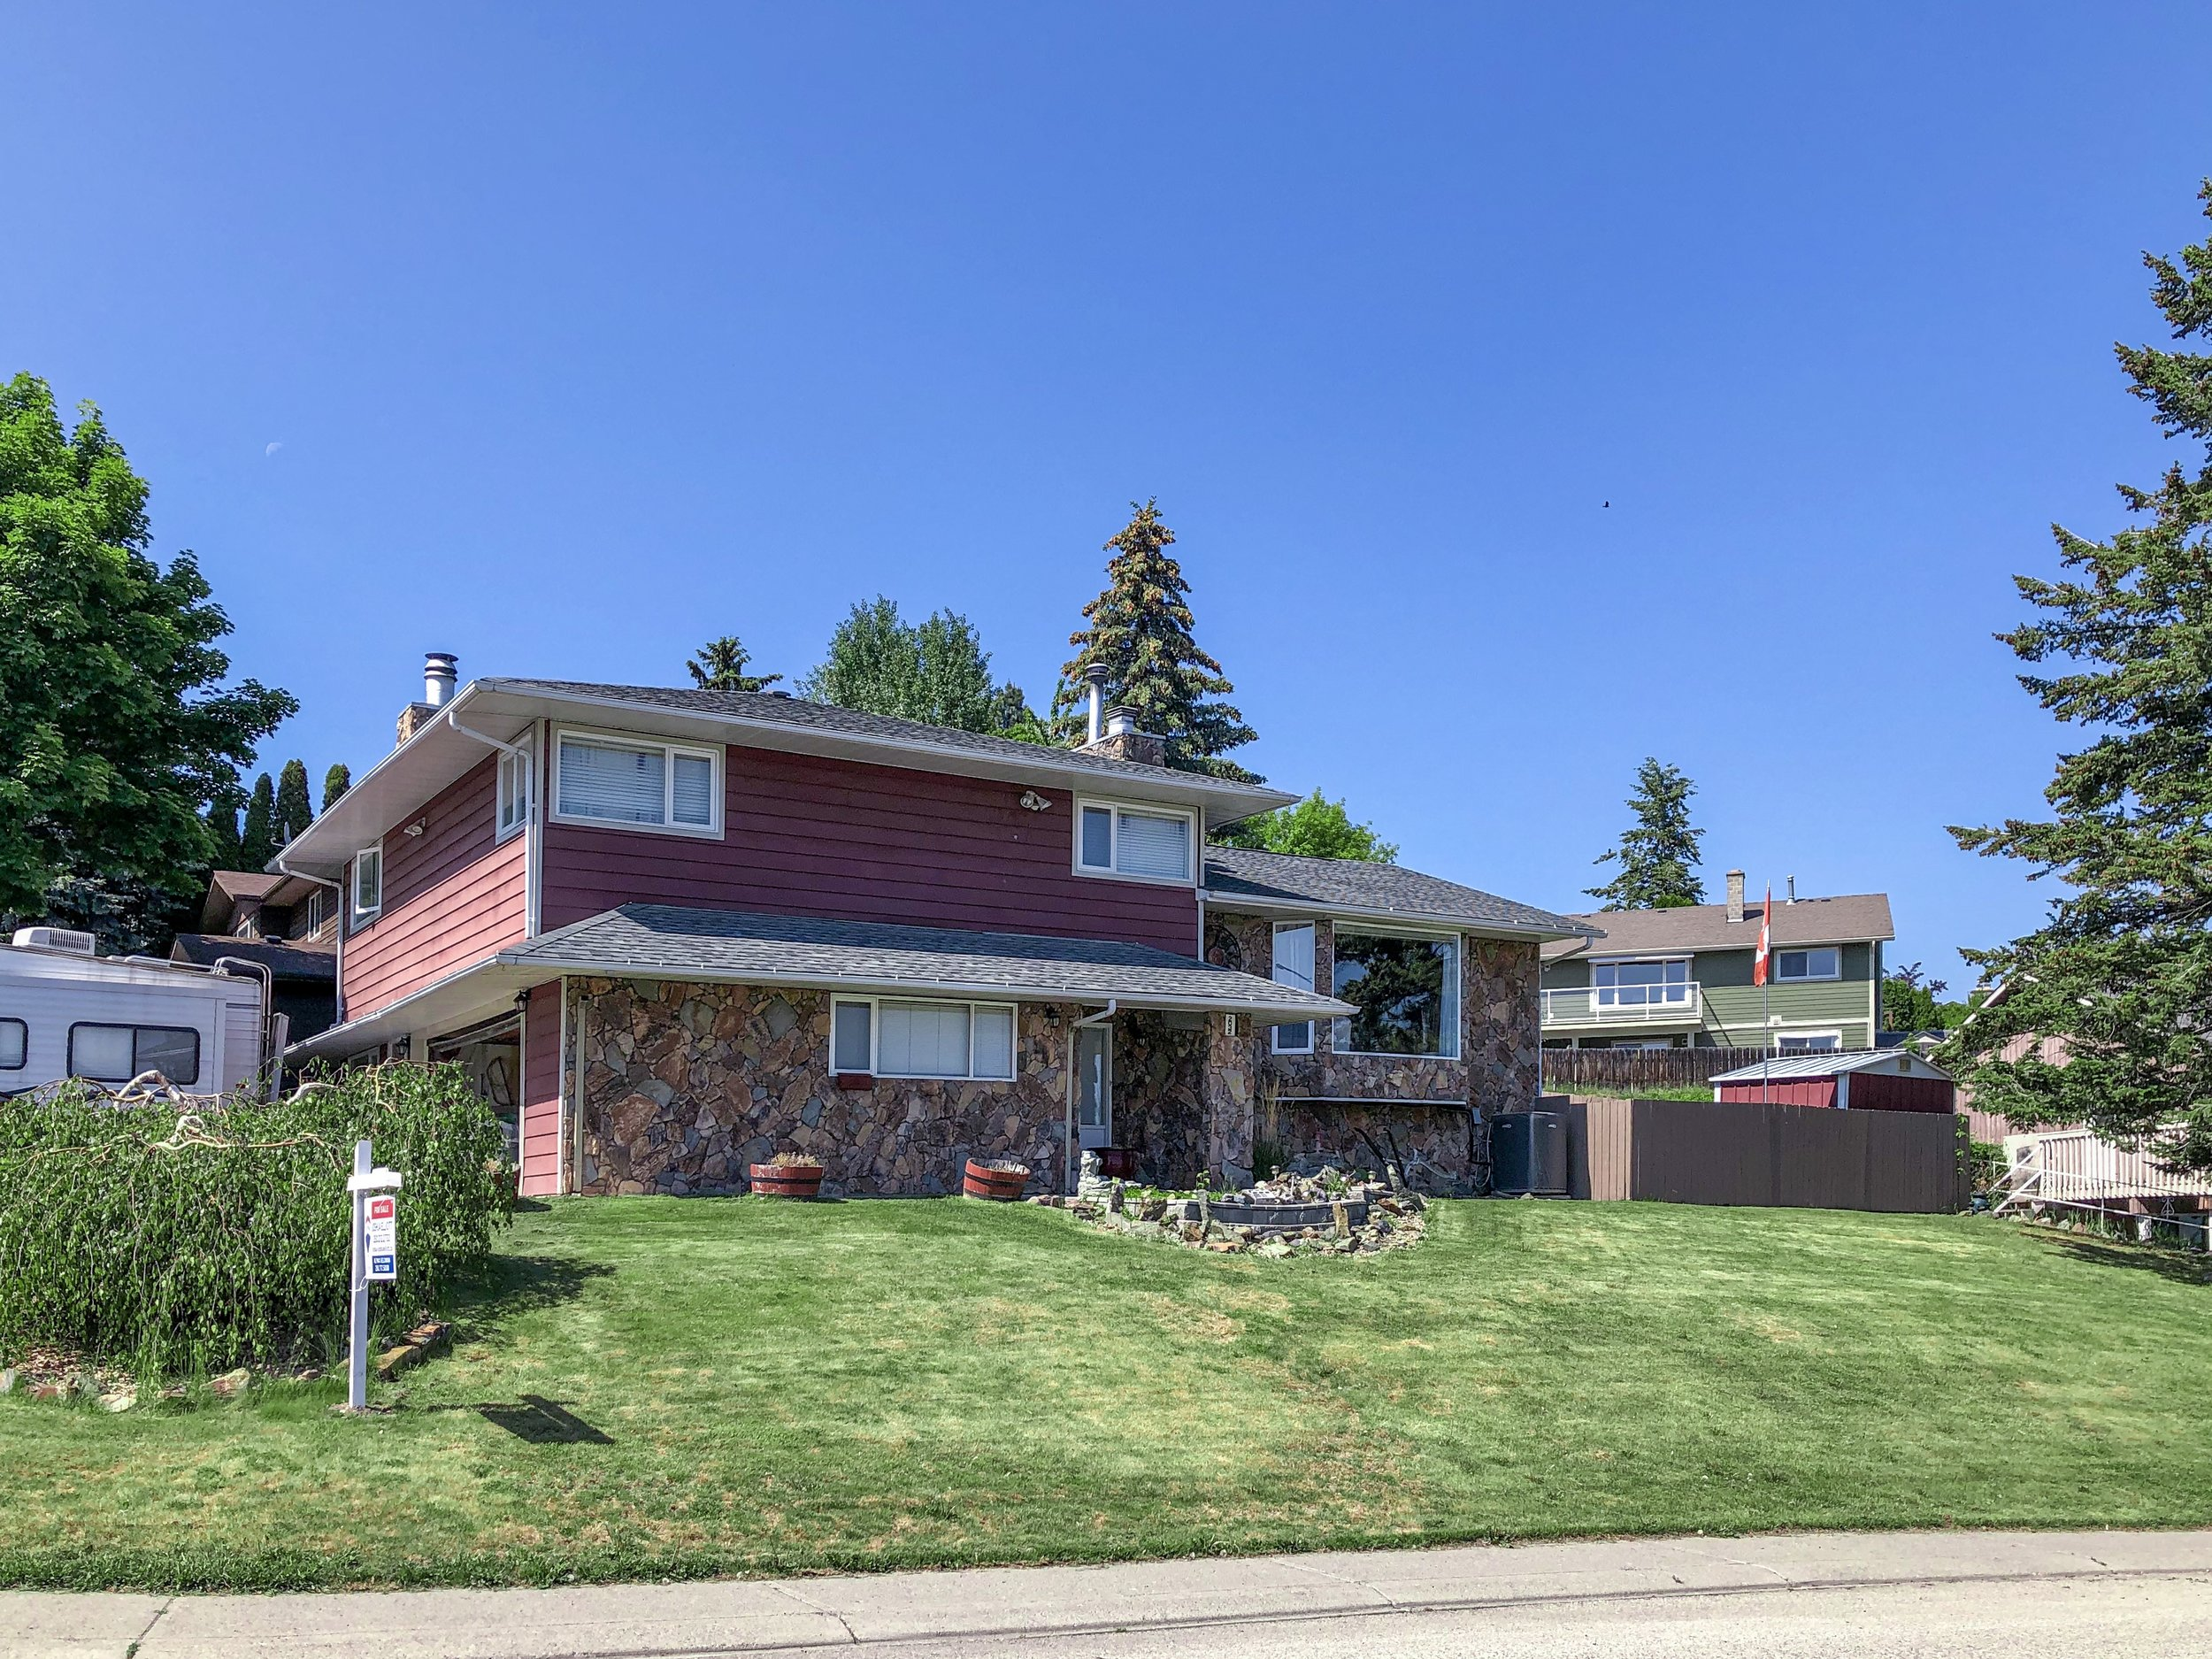 2032-sifton-avenue-kamloops-bc-aberdeen-for-sale-exterior-front-angle.jpg